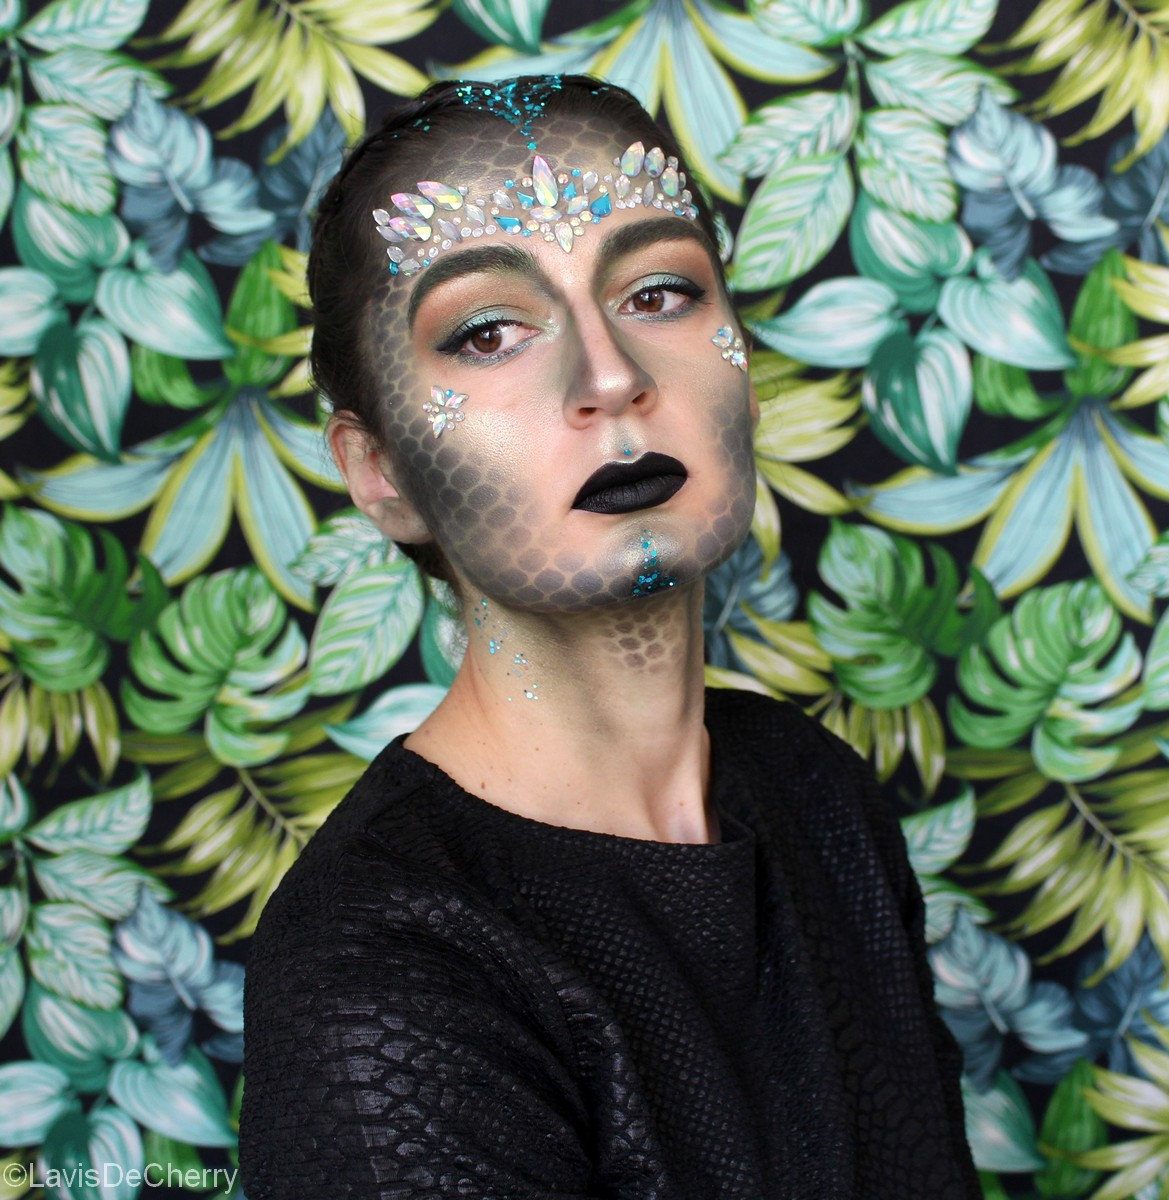 maquillage-halloween-strass-paillettes-feminin-reptile-écailles